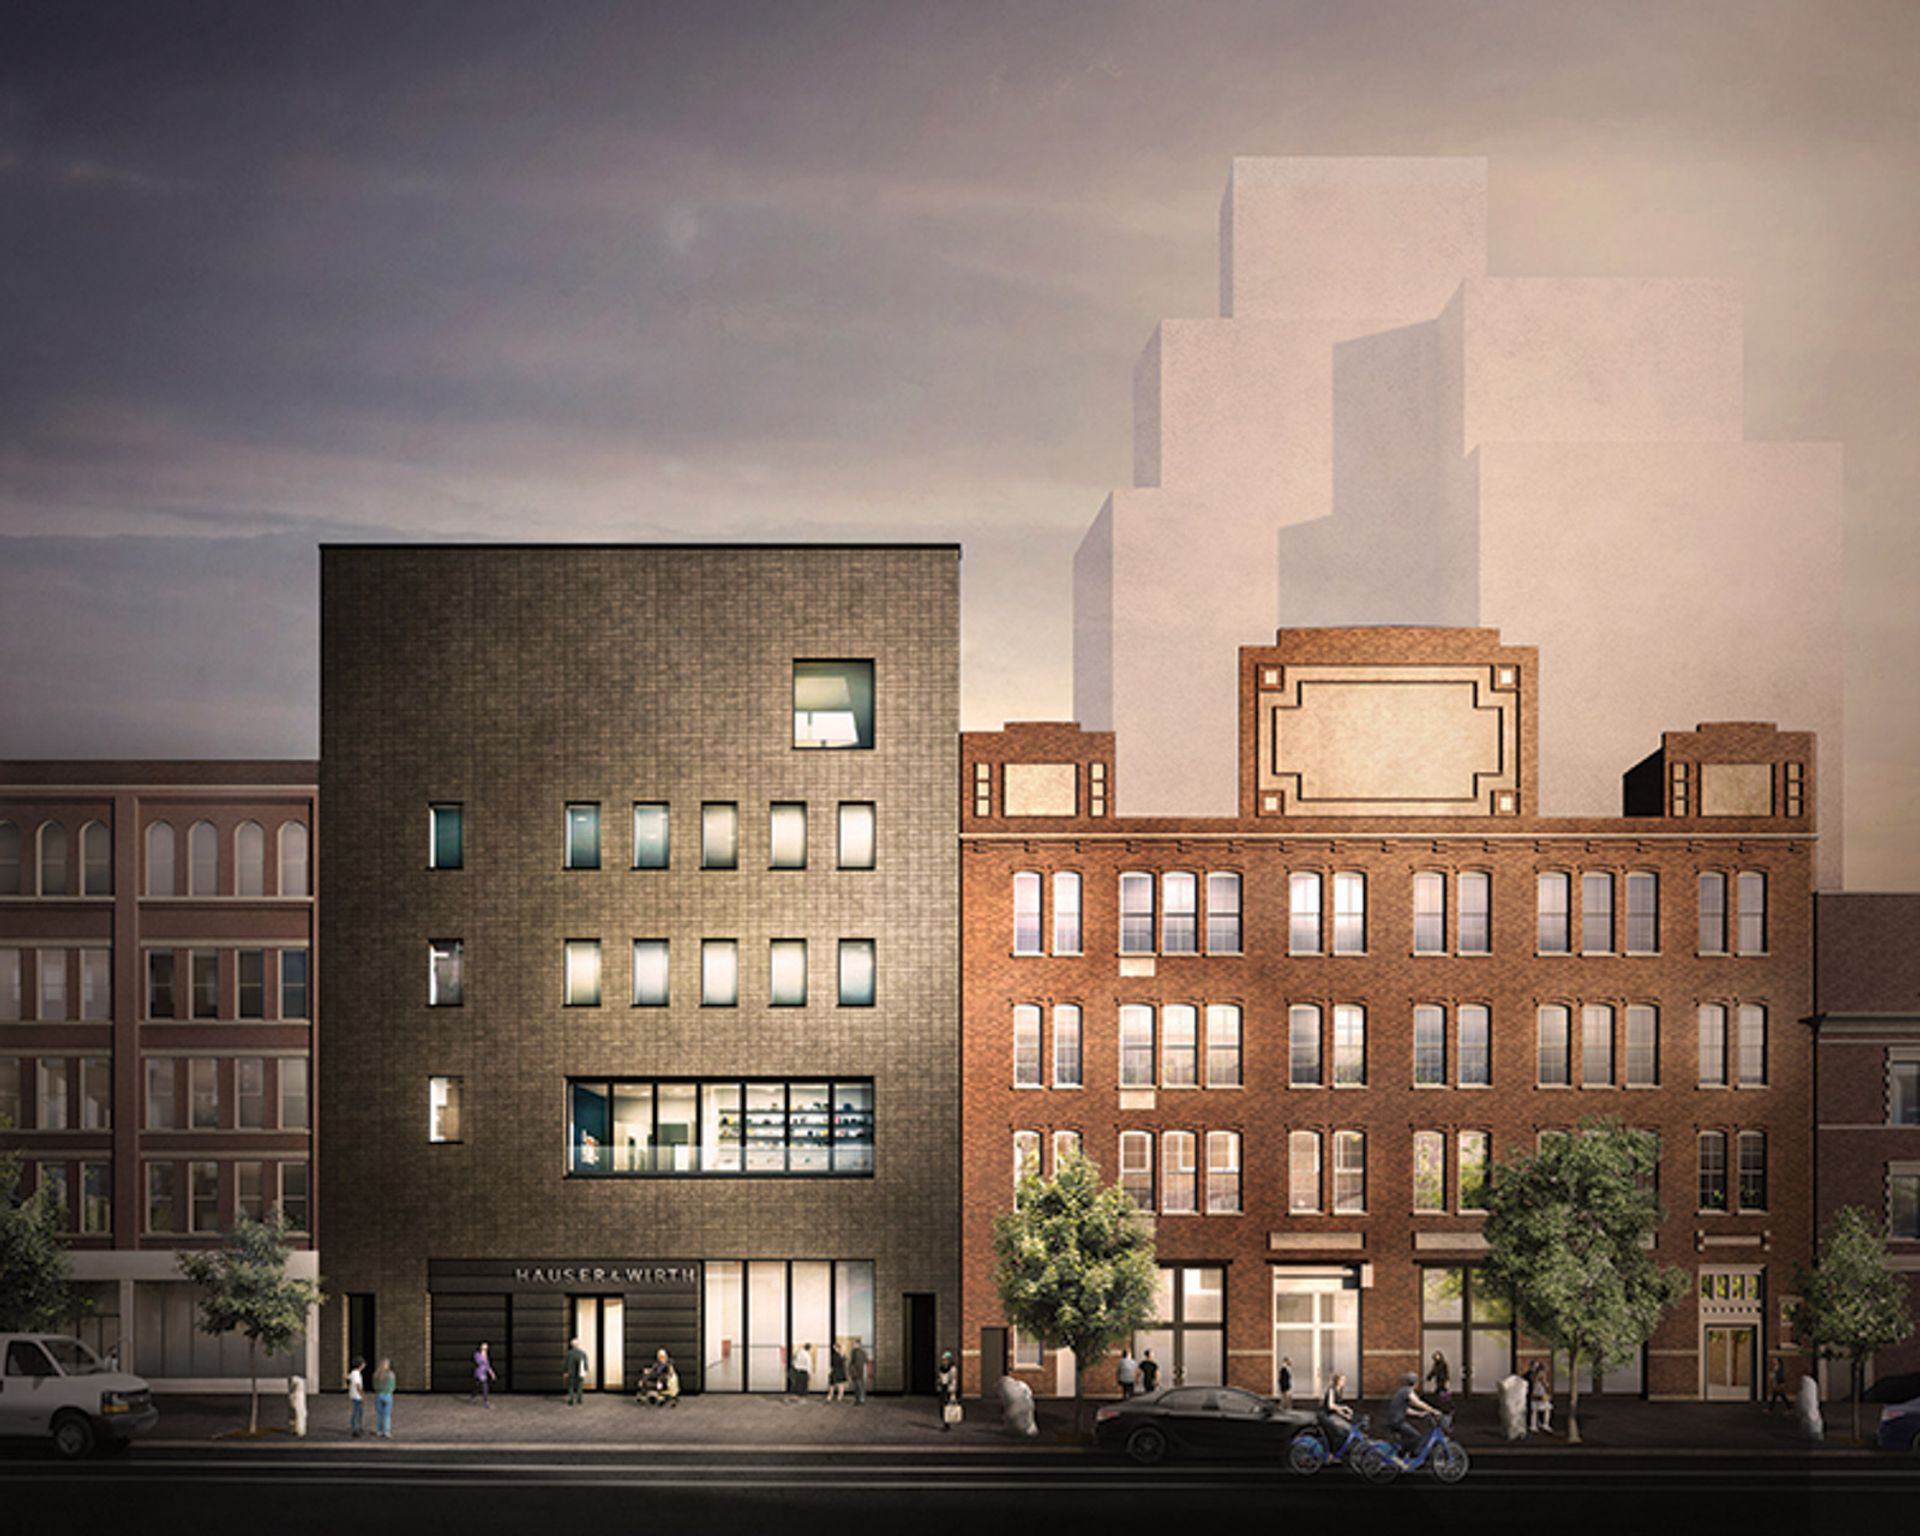 Hauser & Wirth has delayed the opening of its new headquarters in Chelsea, due to open on 2 May Courtesy of Selldorf Architects